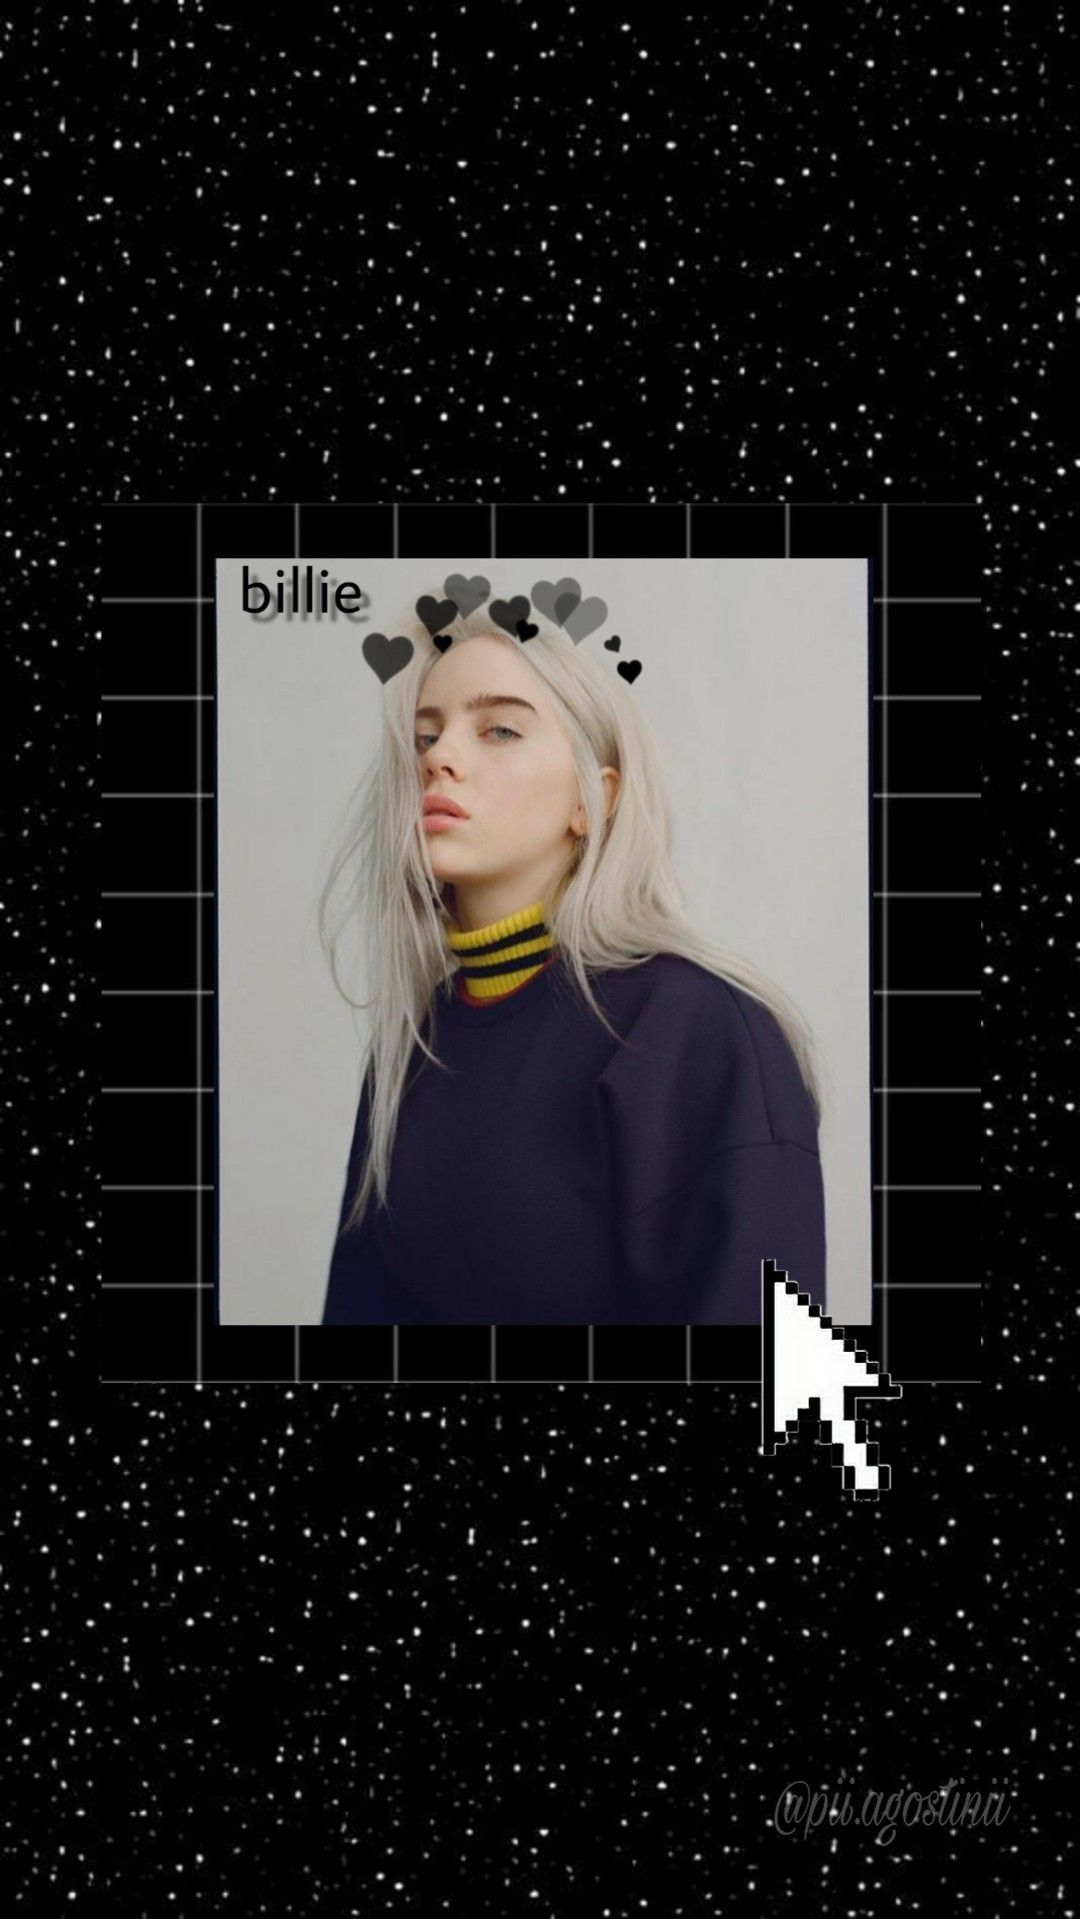 14 Billie Eilish Wallpaper Aesthetic 2k Luxury Wallpaper In 2020 Billie Billie Eilish Cute Wallpapers